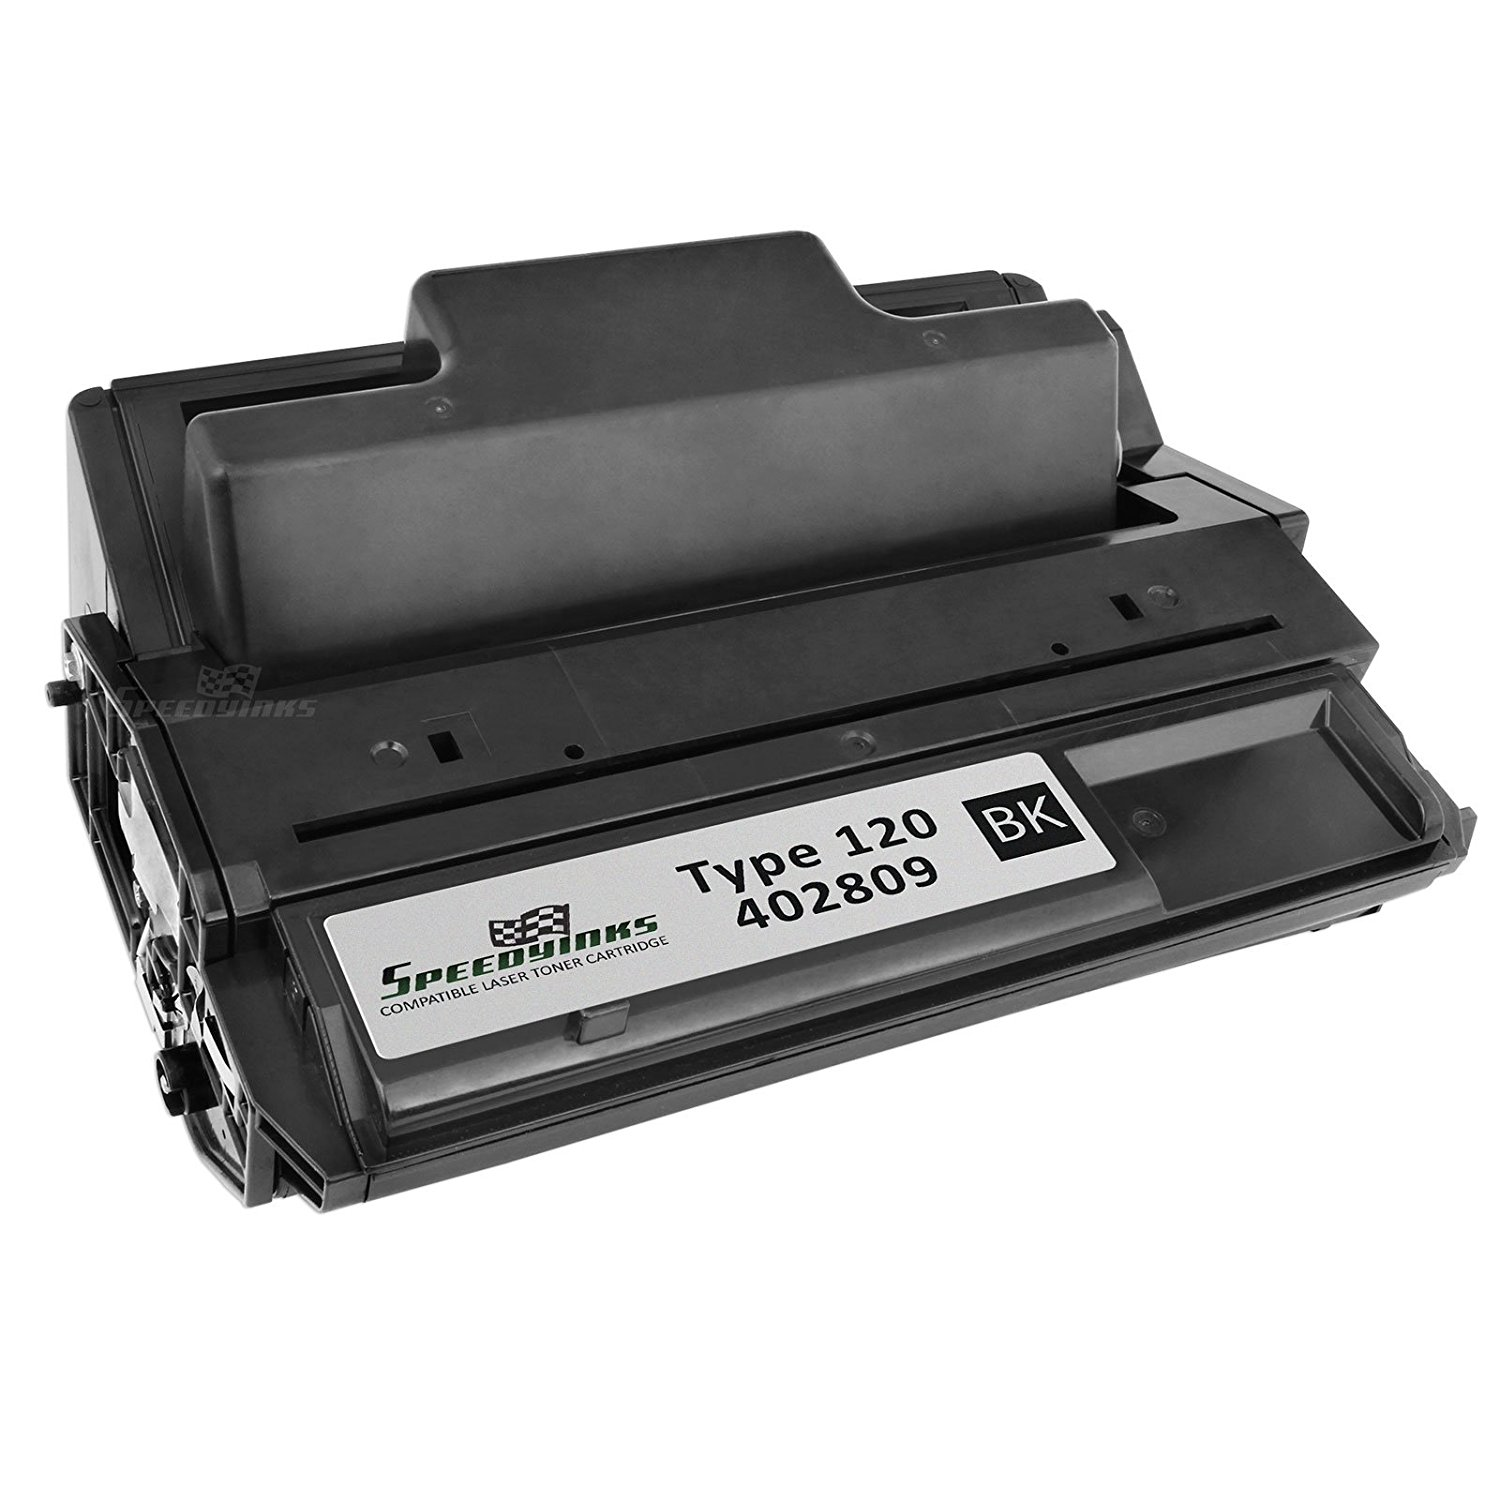 4 Digital Duplicator Masters Compatible With Ricoh JP-10S 893023 CPMT12 DX A4